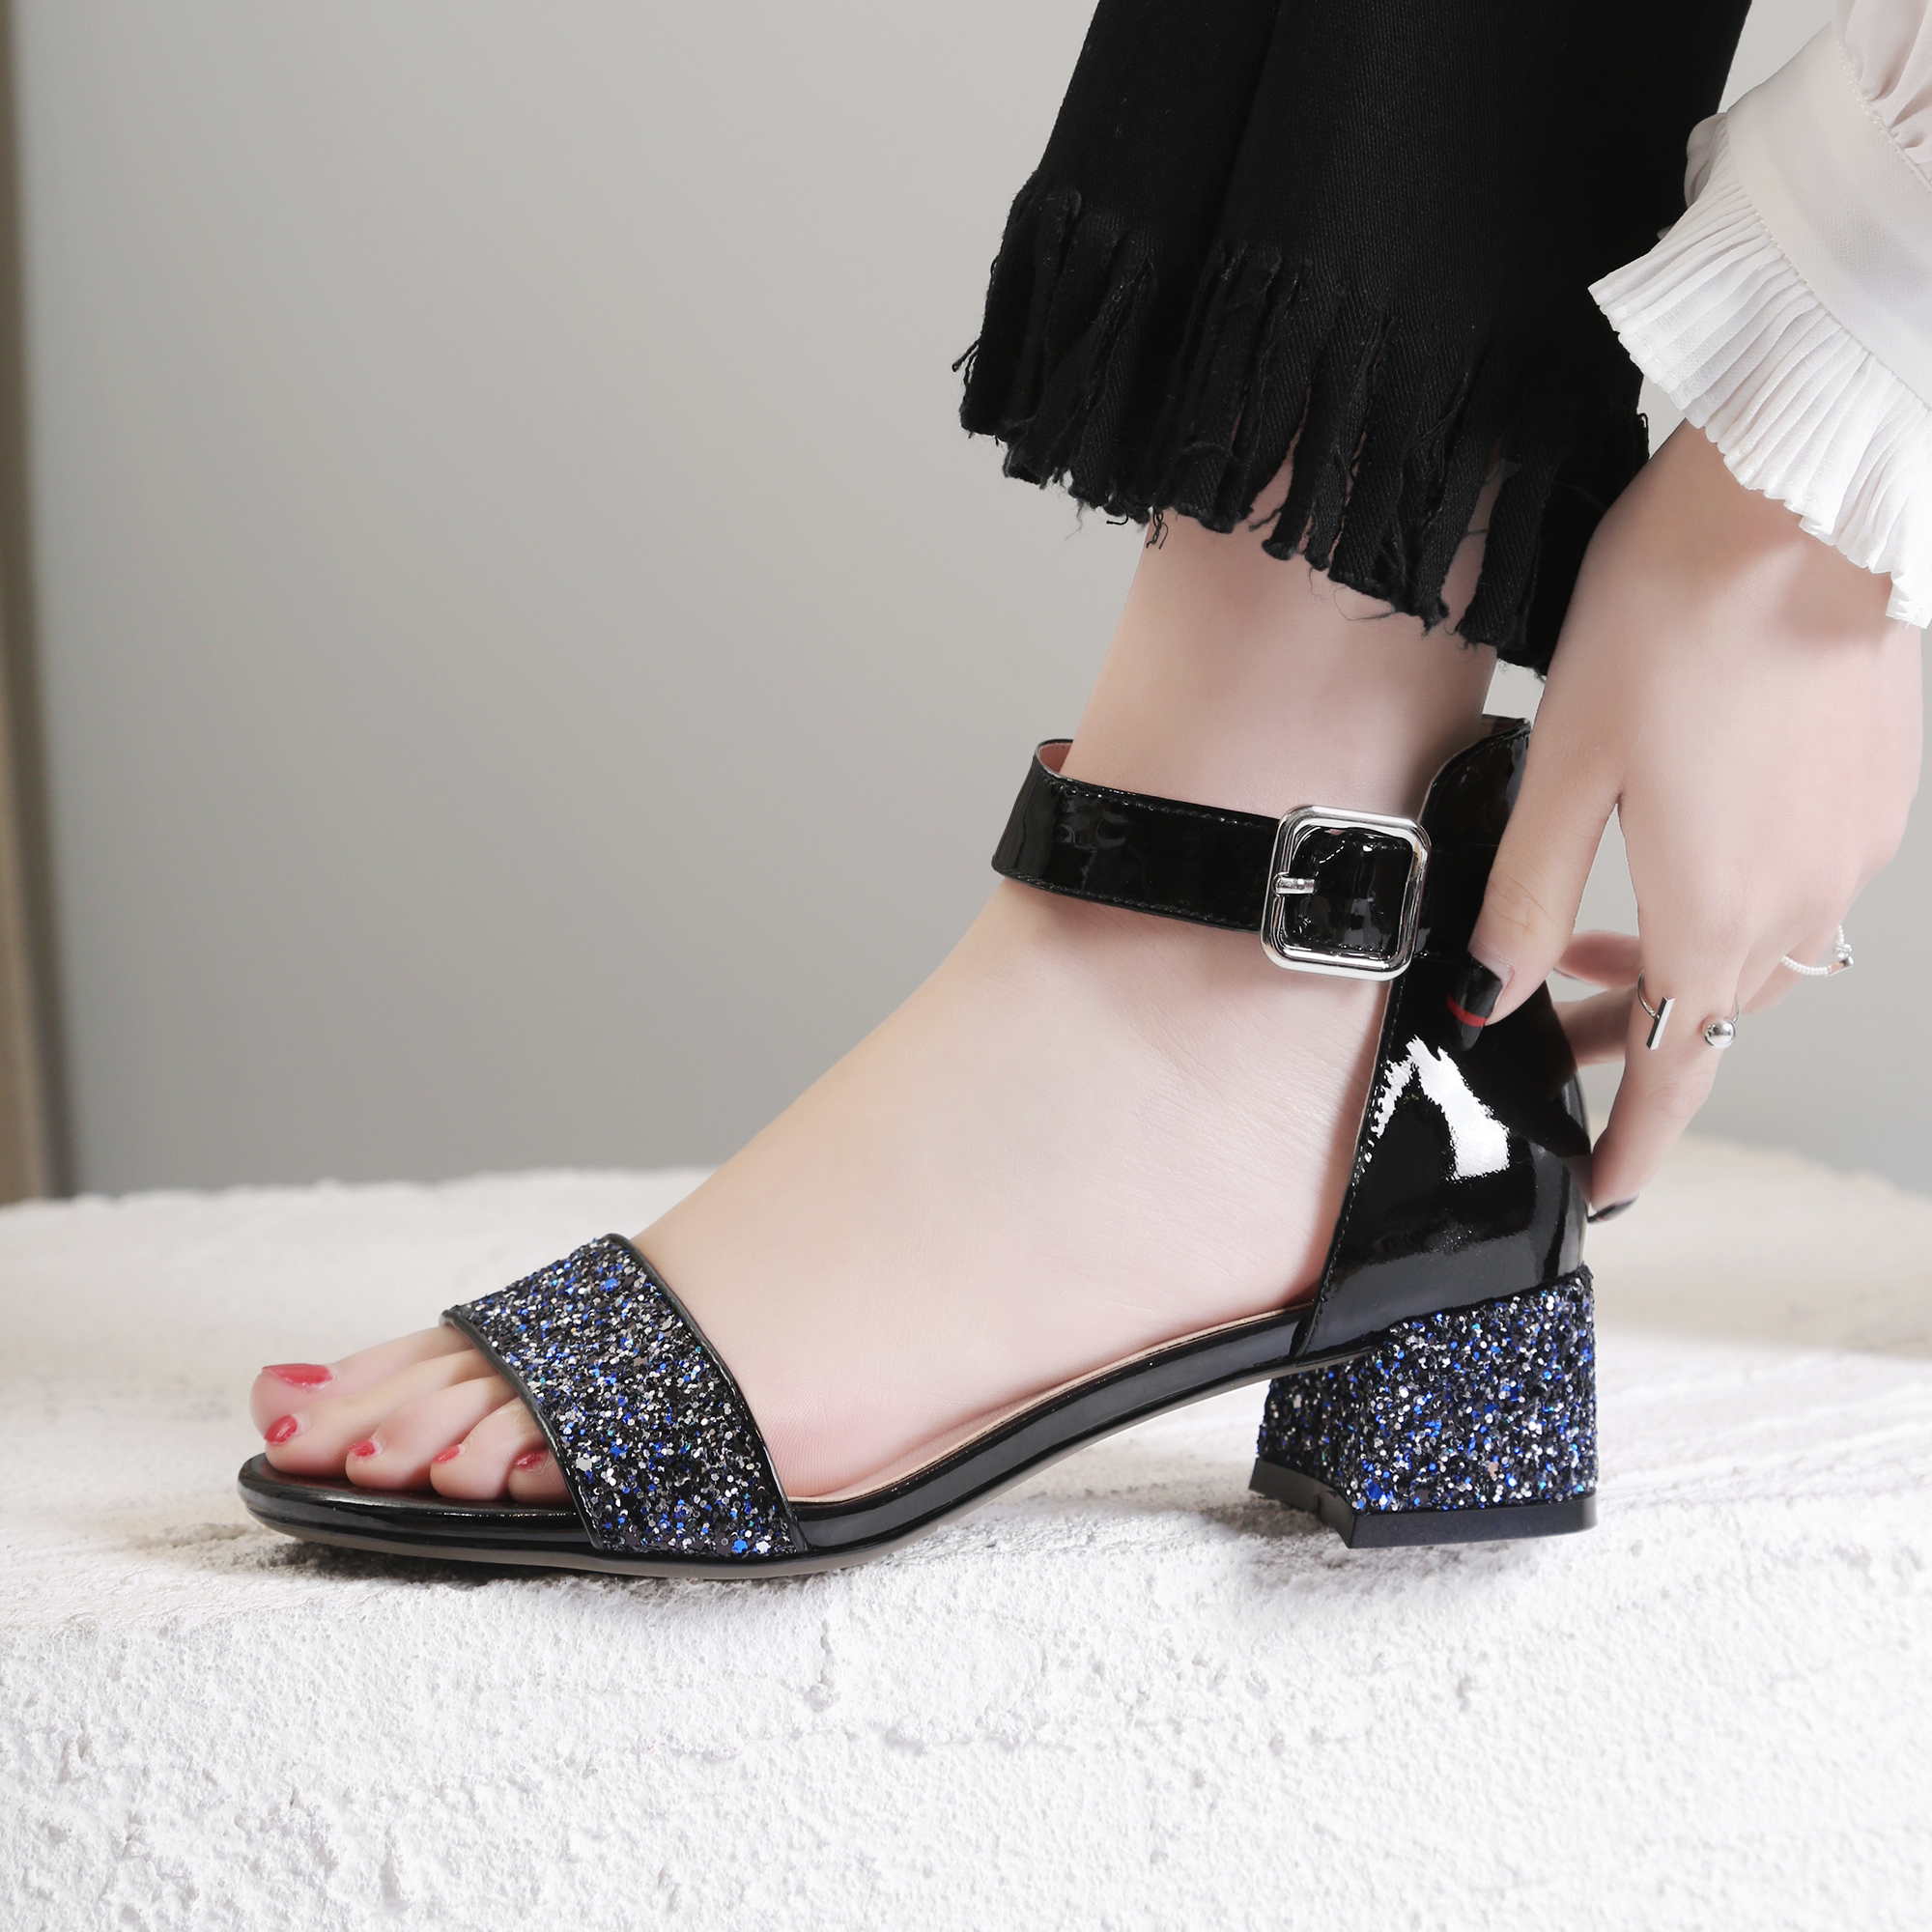 Silver Black Glitter Leather Summer Sandals Ankle Strap Thick High Heel  Cover Heel Shoes 4cm Sandalen Dames -in Middle Heels from Shoes on  Aliexpress.com ... 68b90a558ece